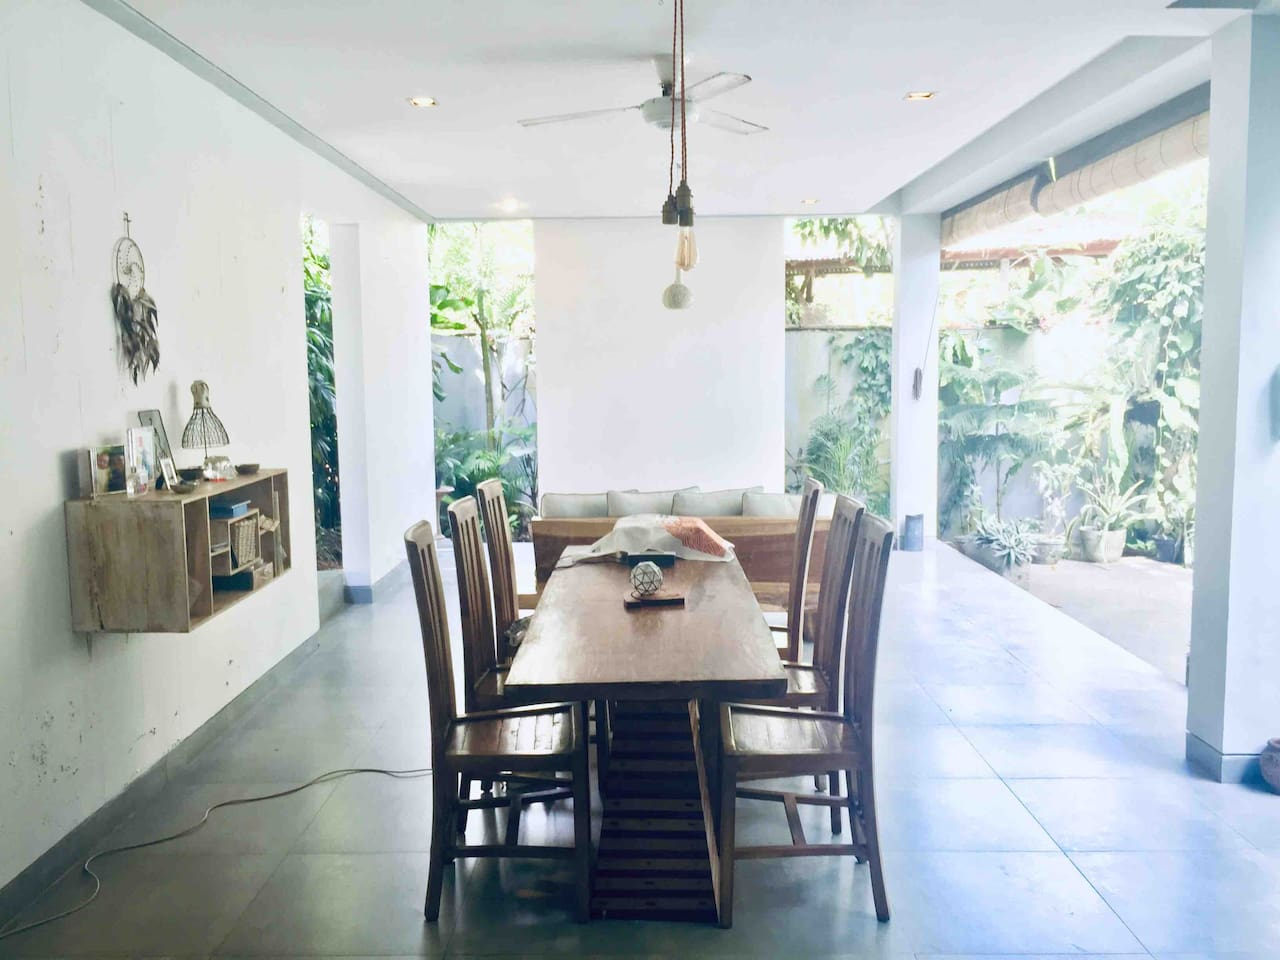 Semi-open contemporary chic villa living in quiet nature (no rooster nor dog barking noise)